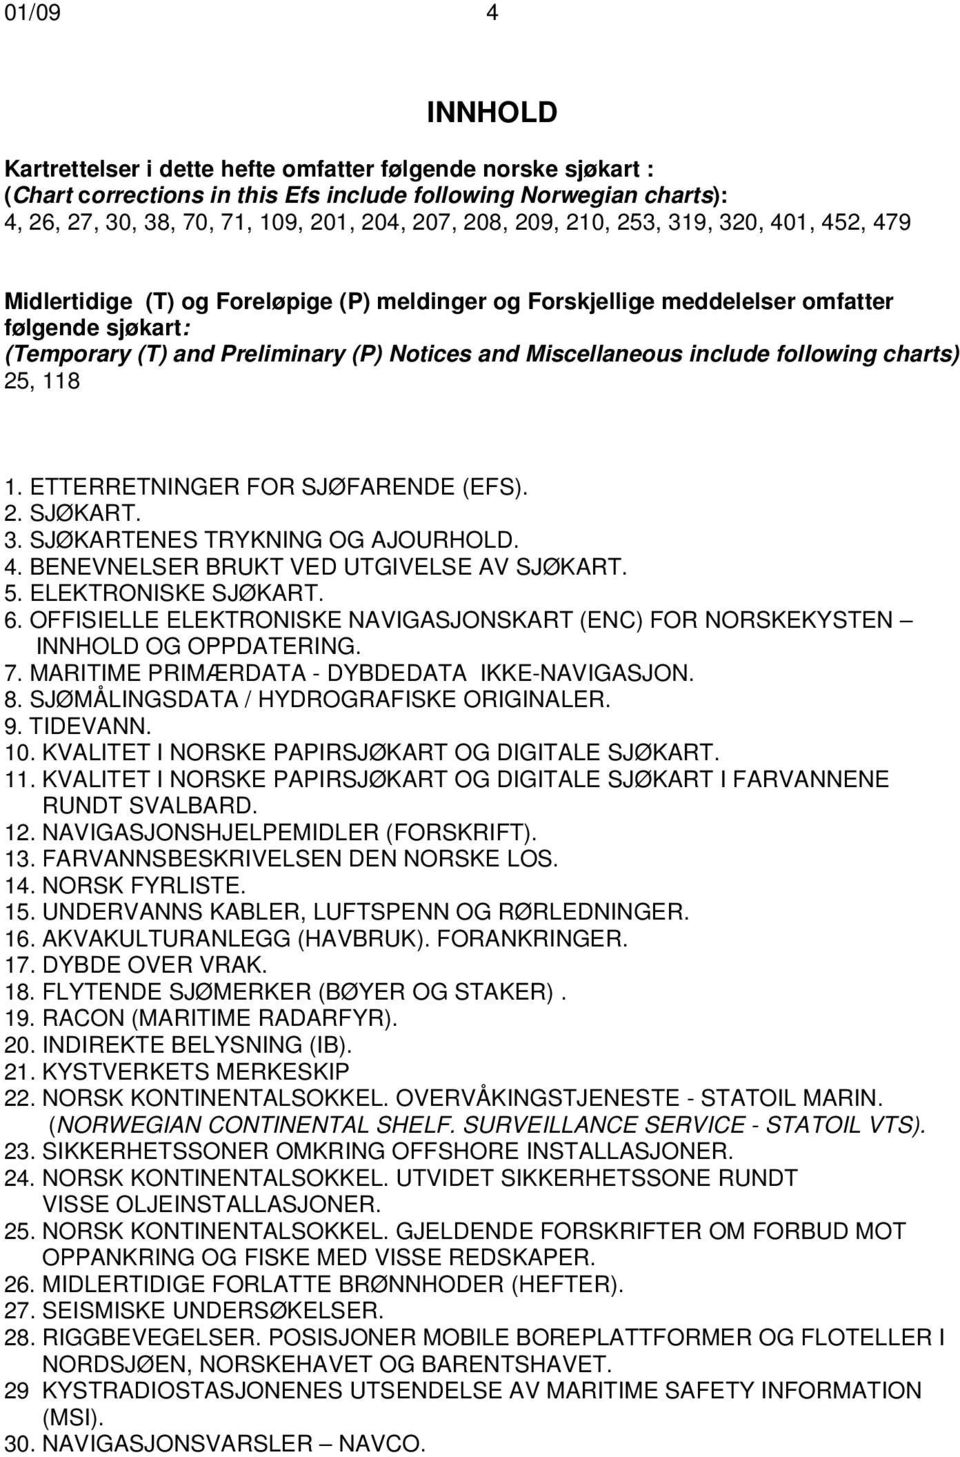 include following charts) 25, 118 1. ETTERRETNINGER FOR SJØFARENDE (EFS). 2. SJØKART. 3. SJØKARTENES TRYKNING OG AJOURHOLD. 4. BENEVNELSER BRUKT VED UTGIVELSE AV SJØKART. 5. ELEKTRONISKE SJØKART. 6.